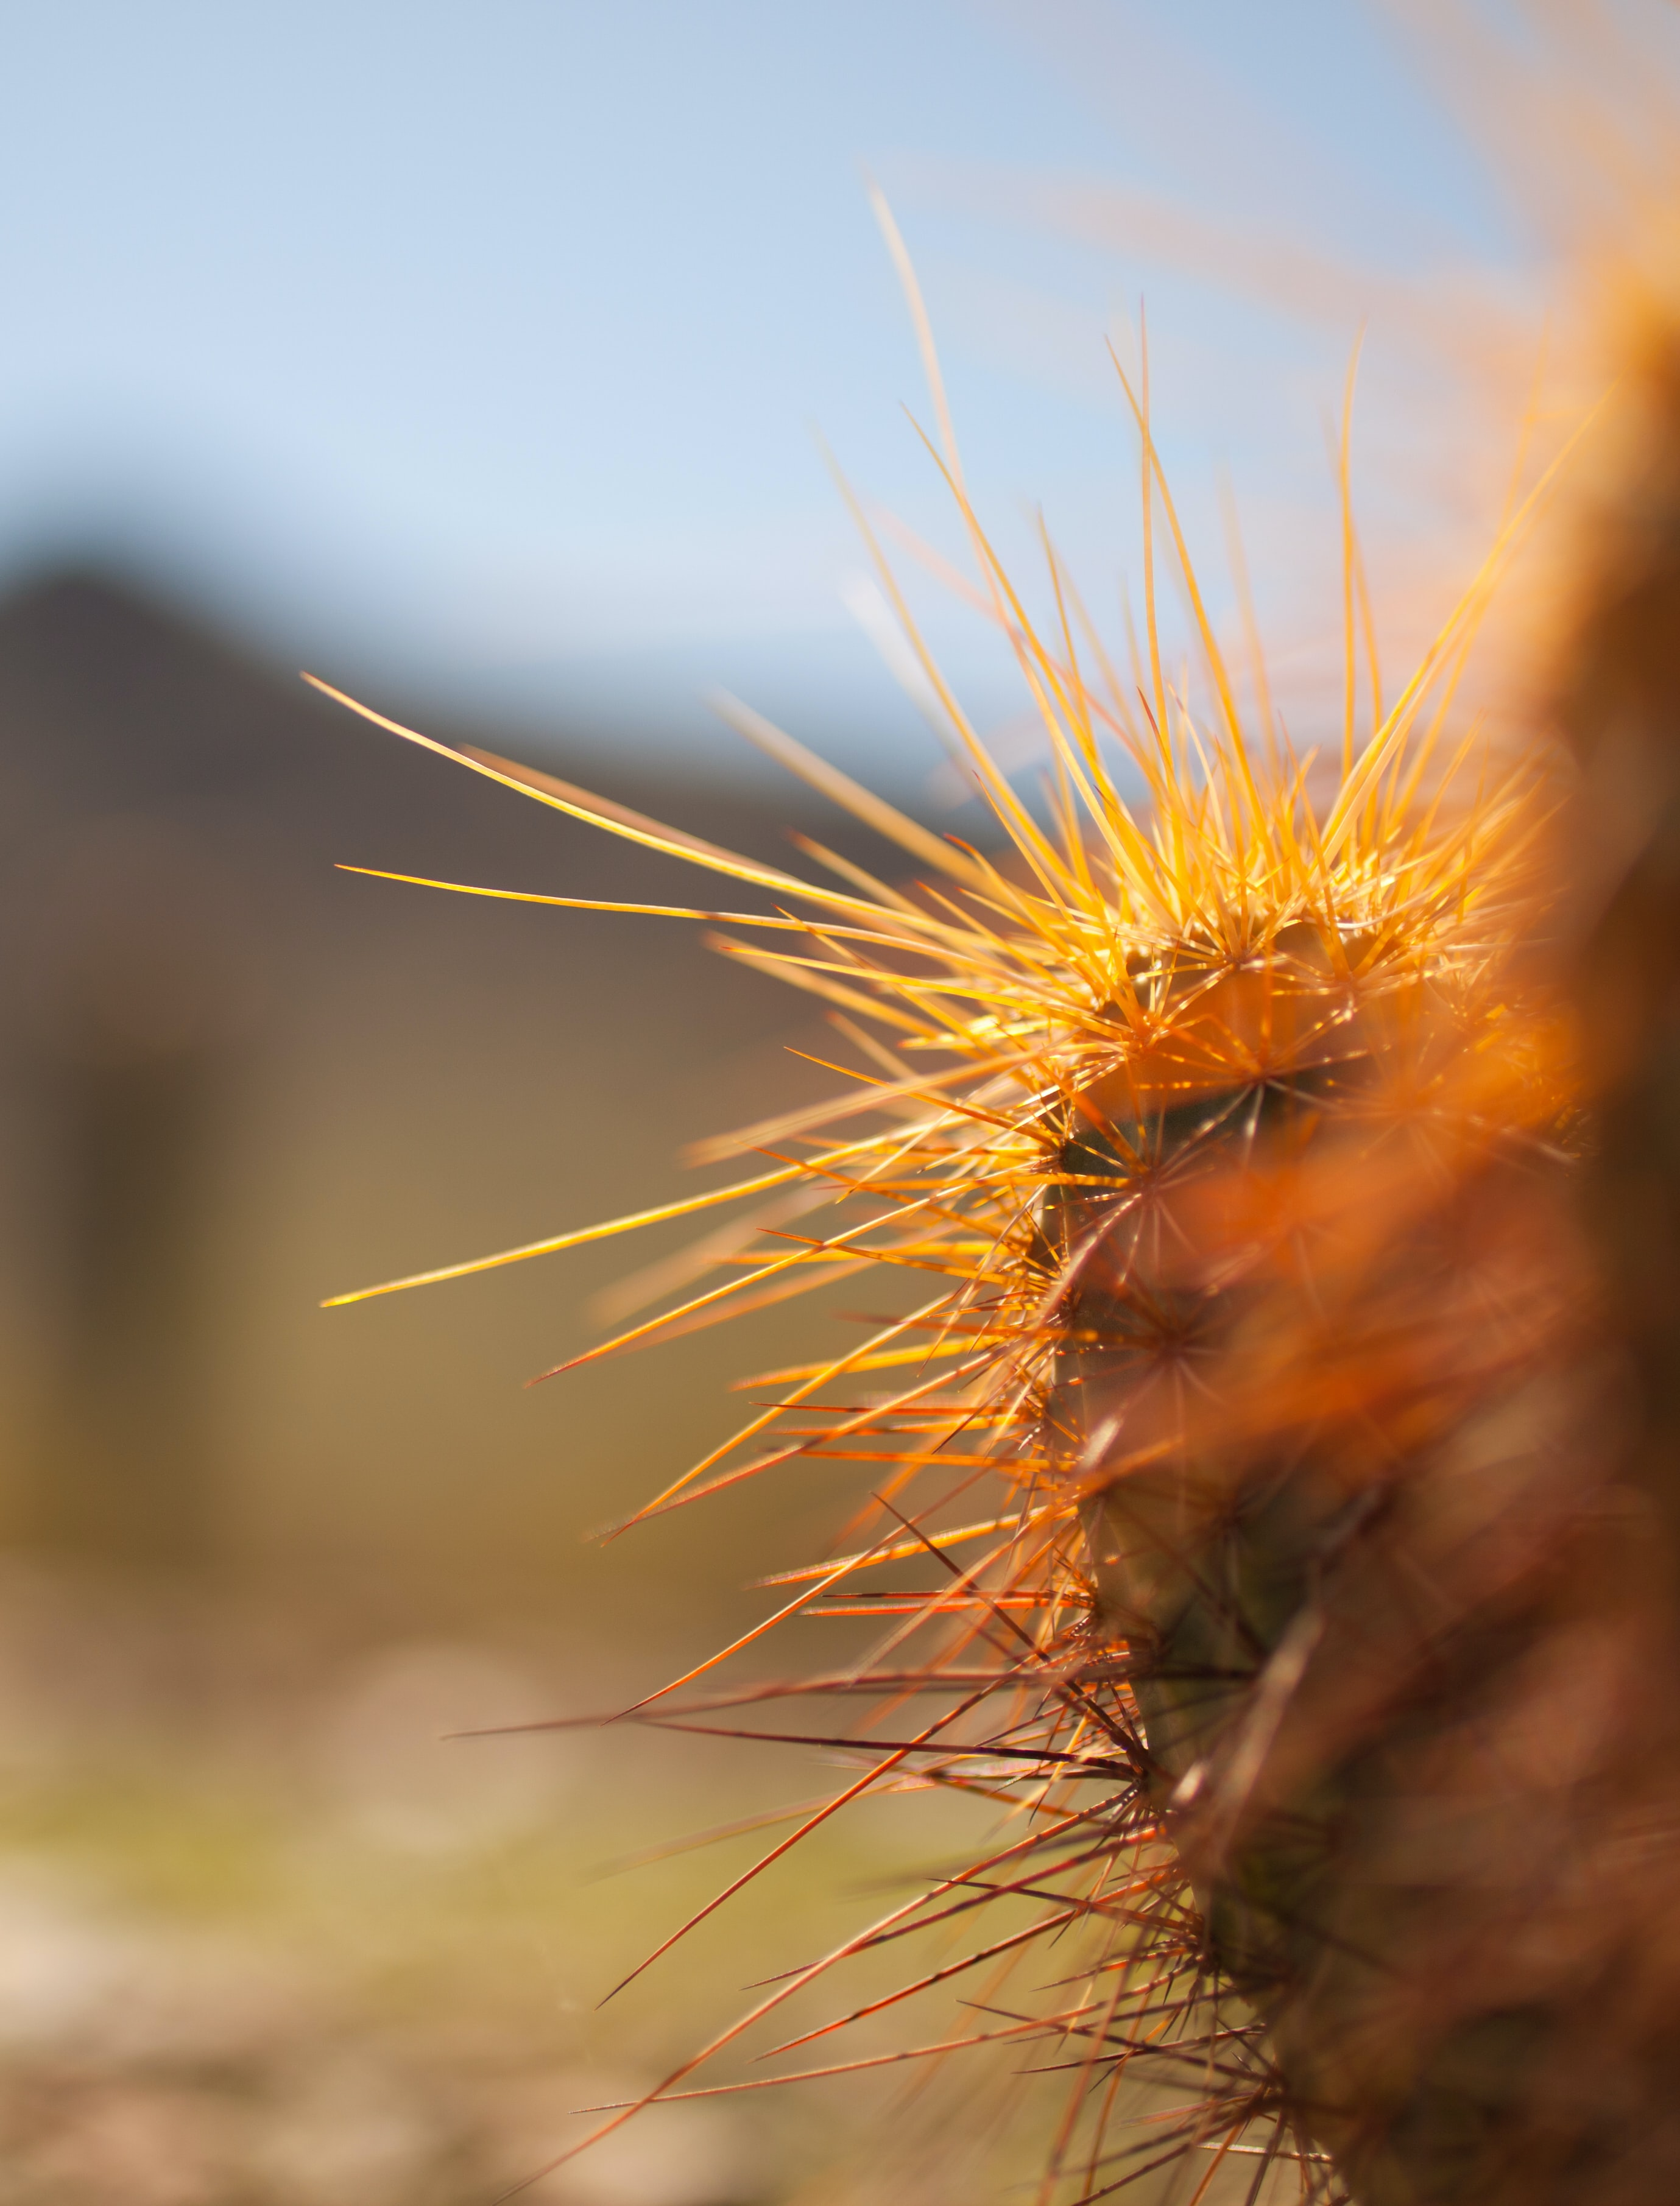 A macro shot of long orange needles on a cactus